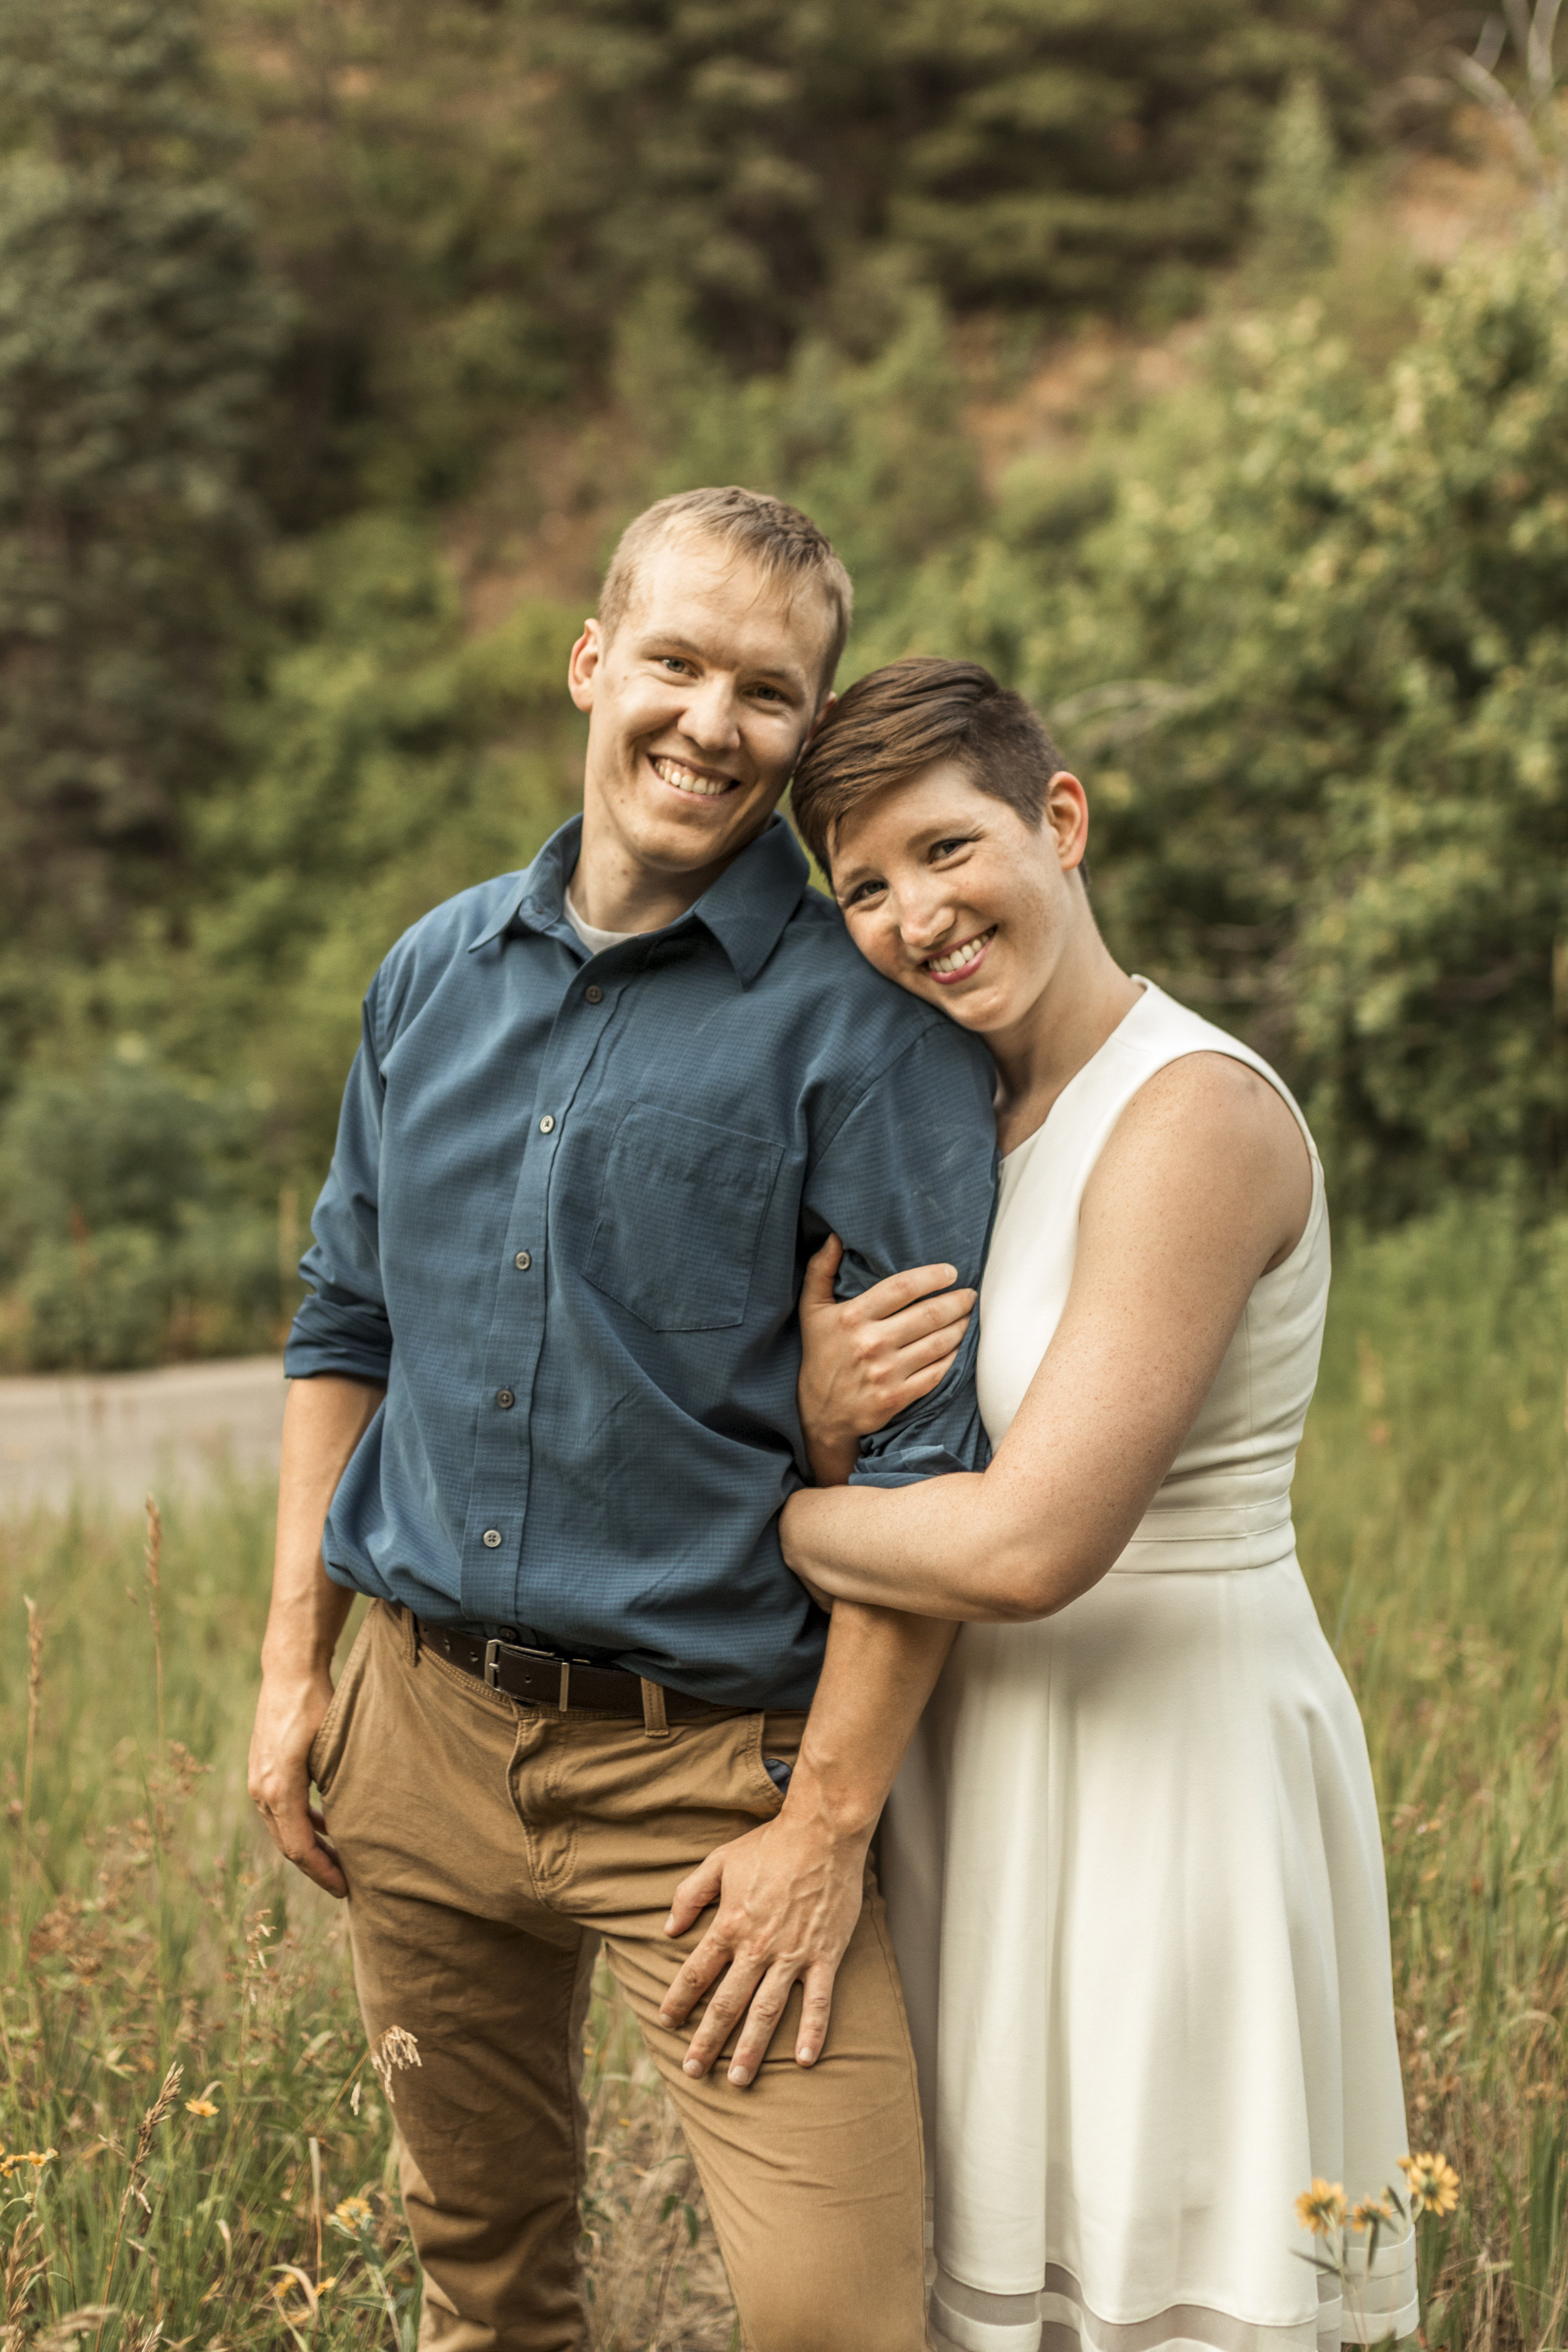 Utah summer engagement session in Millcreek Canyon by Bri Bergman Photography